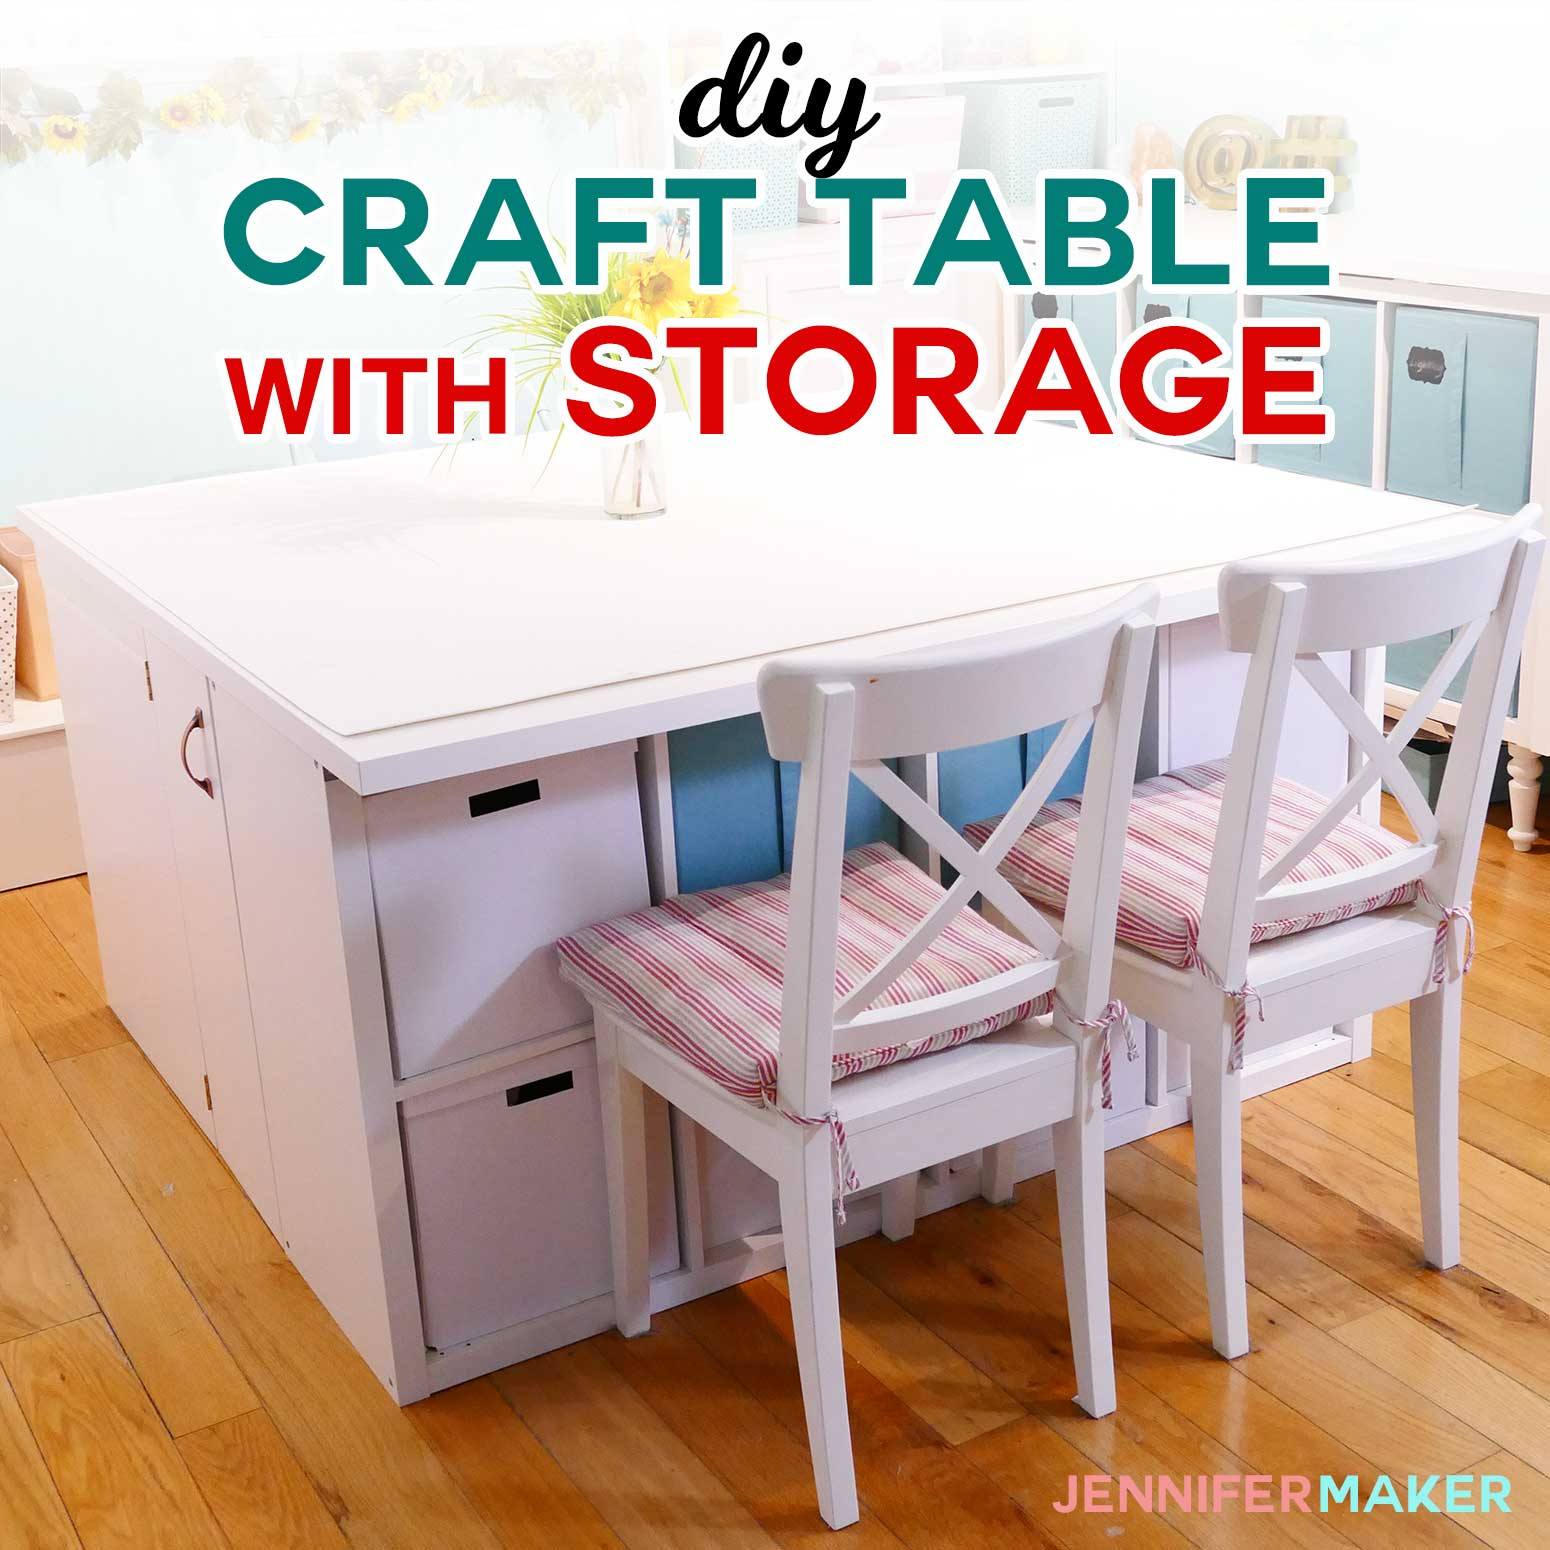 Diy Craft Table With Storage My Ikea Hack Jennifer Maker